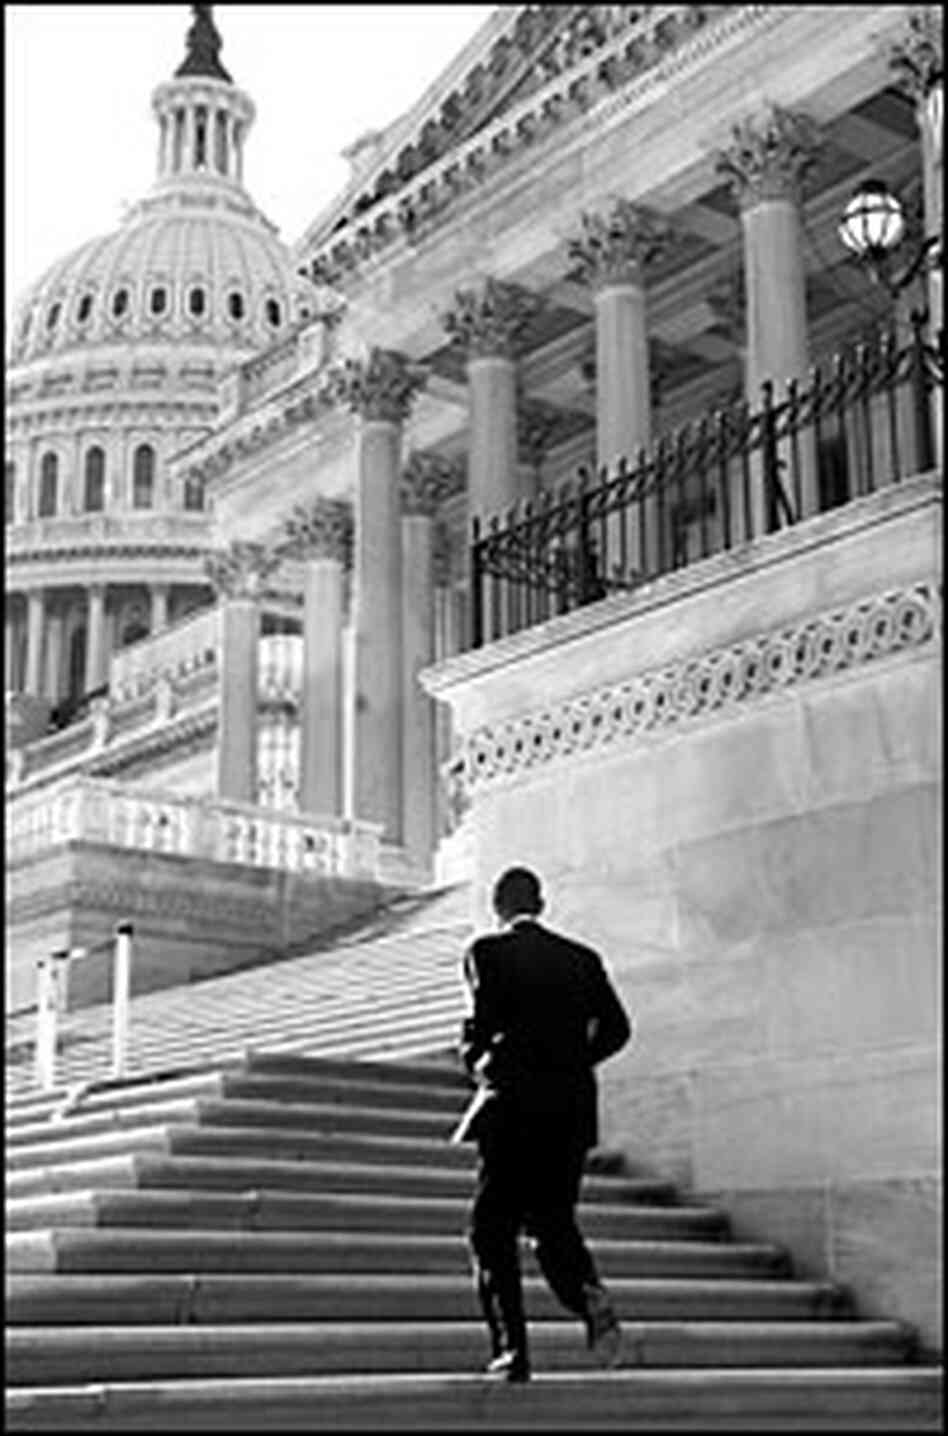 Sen. Barack Obama walks up the steps of the U.S. Capitol.